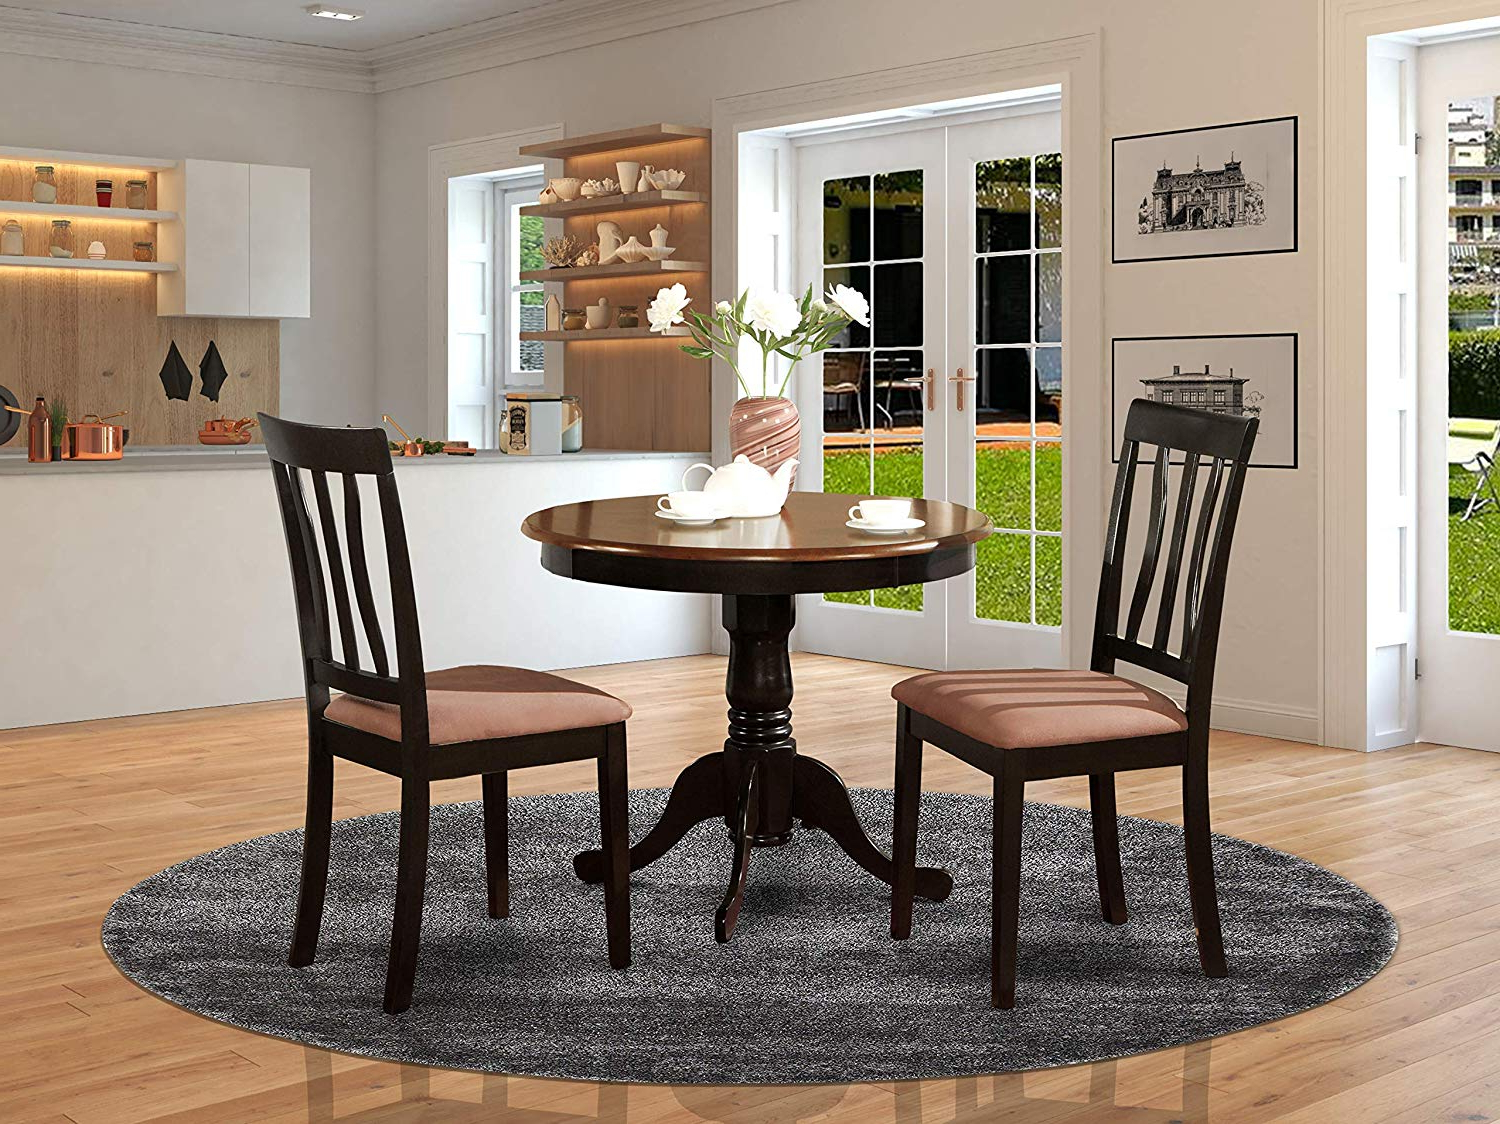 2020 Antique Black Wood Kitchen Dining Tables Pertaining To Anti3 Blk Lc 3 Pc Kitchen Table Set Breakfast Nook With 2 Kitchen Dining Chairs (View 17 of 25)